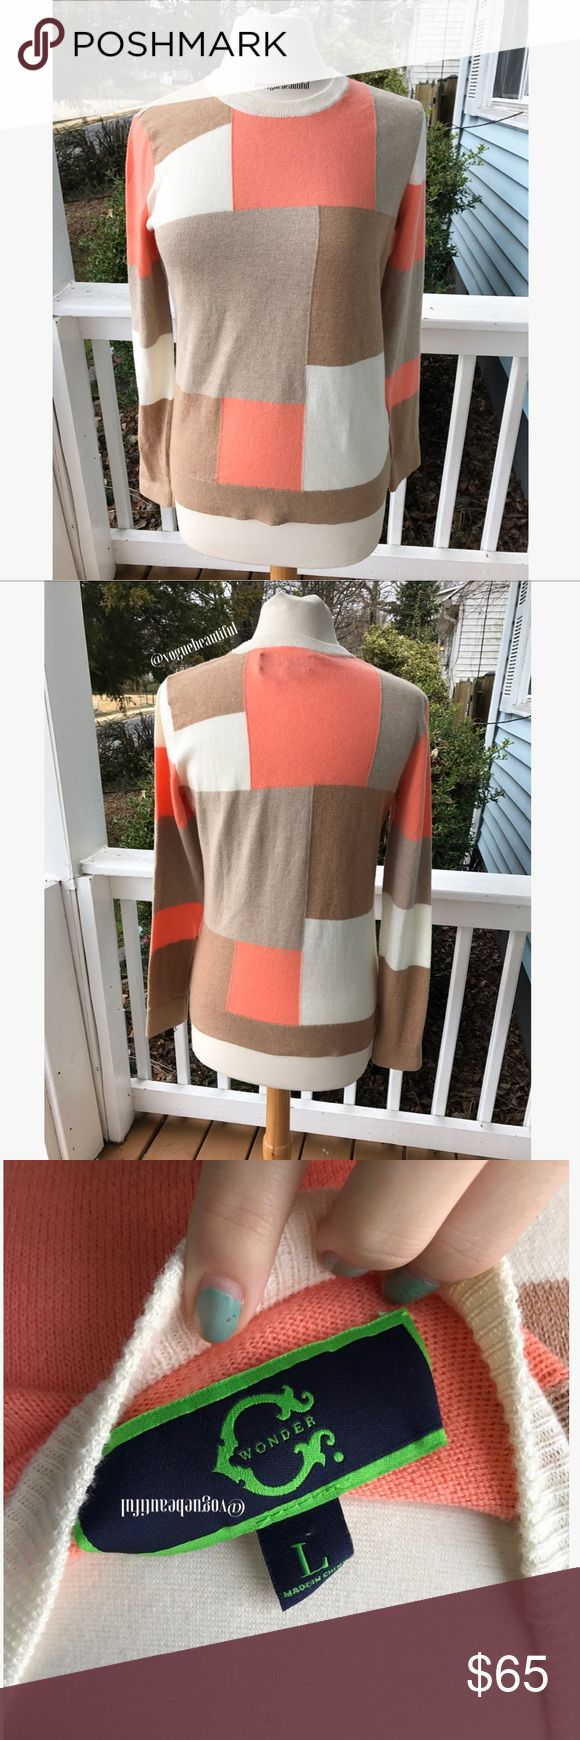 C Wonder Colorblock Sweater Super cute C Wonder beige, white & orange colorblock sweater - colors may vary slightly from photos taken in daylight - size large - excellent condition with no stains - C Wonder is Tory Burch's Ex-Husbands brand - !!NO TRADES!! C Wonder Sweaters